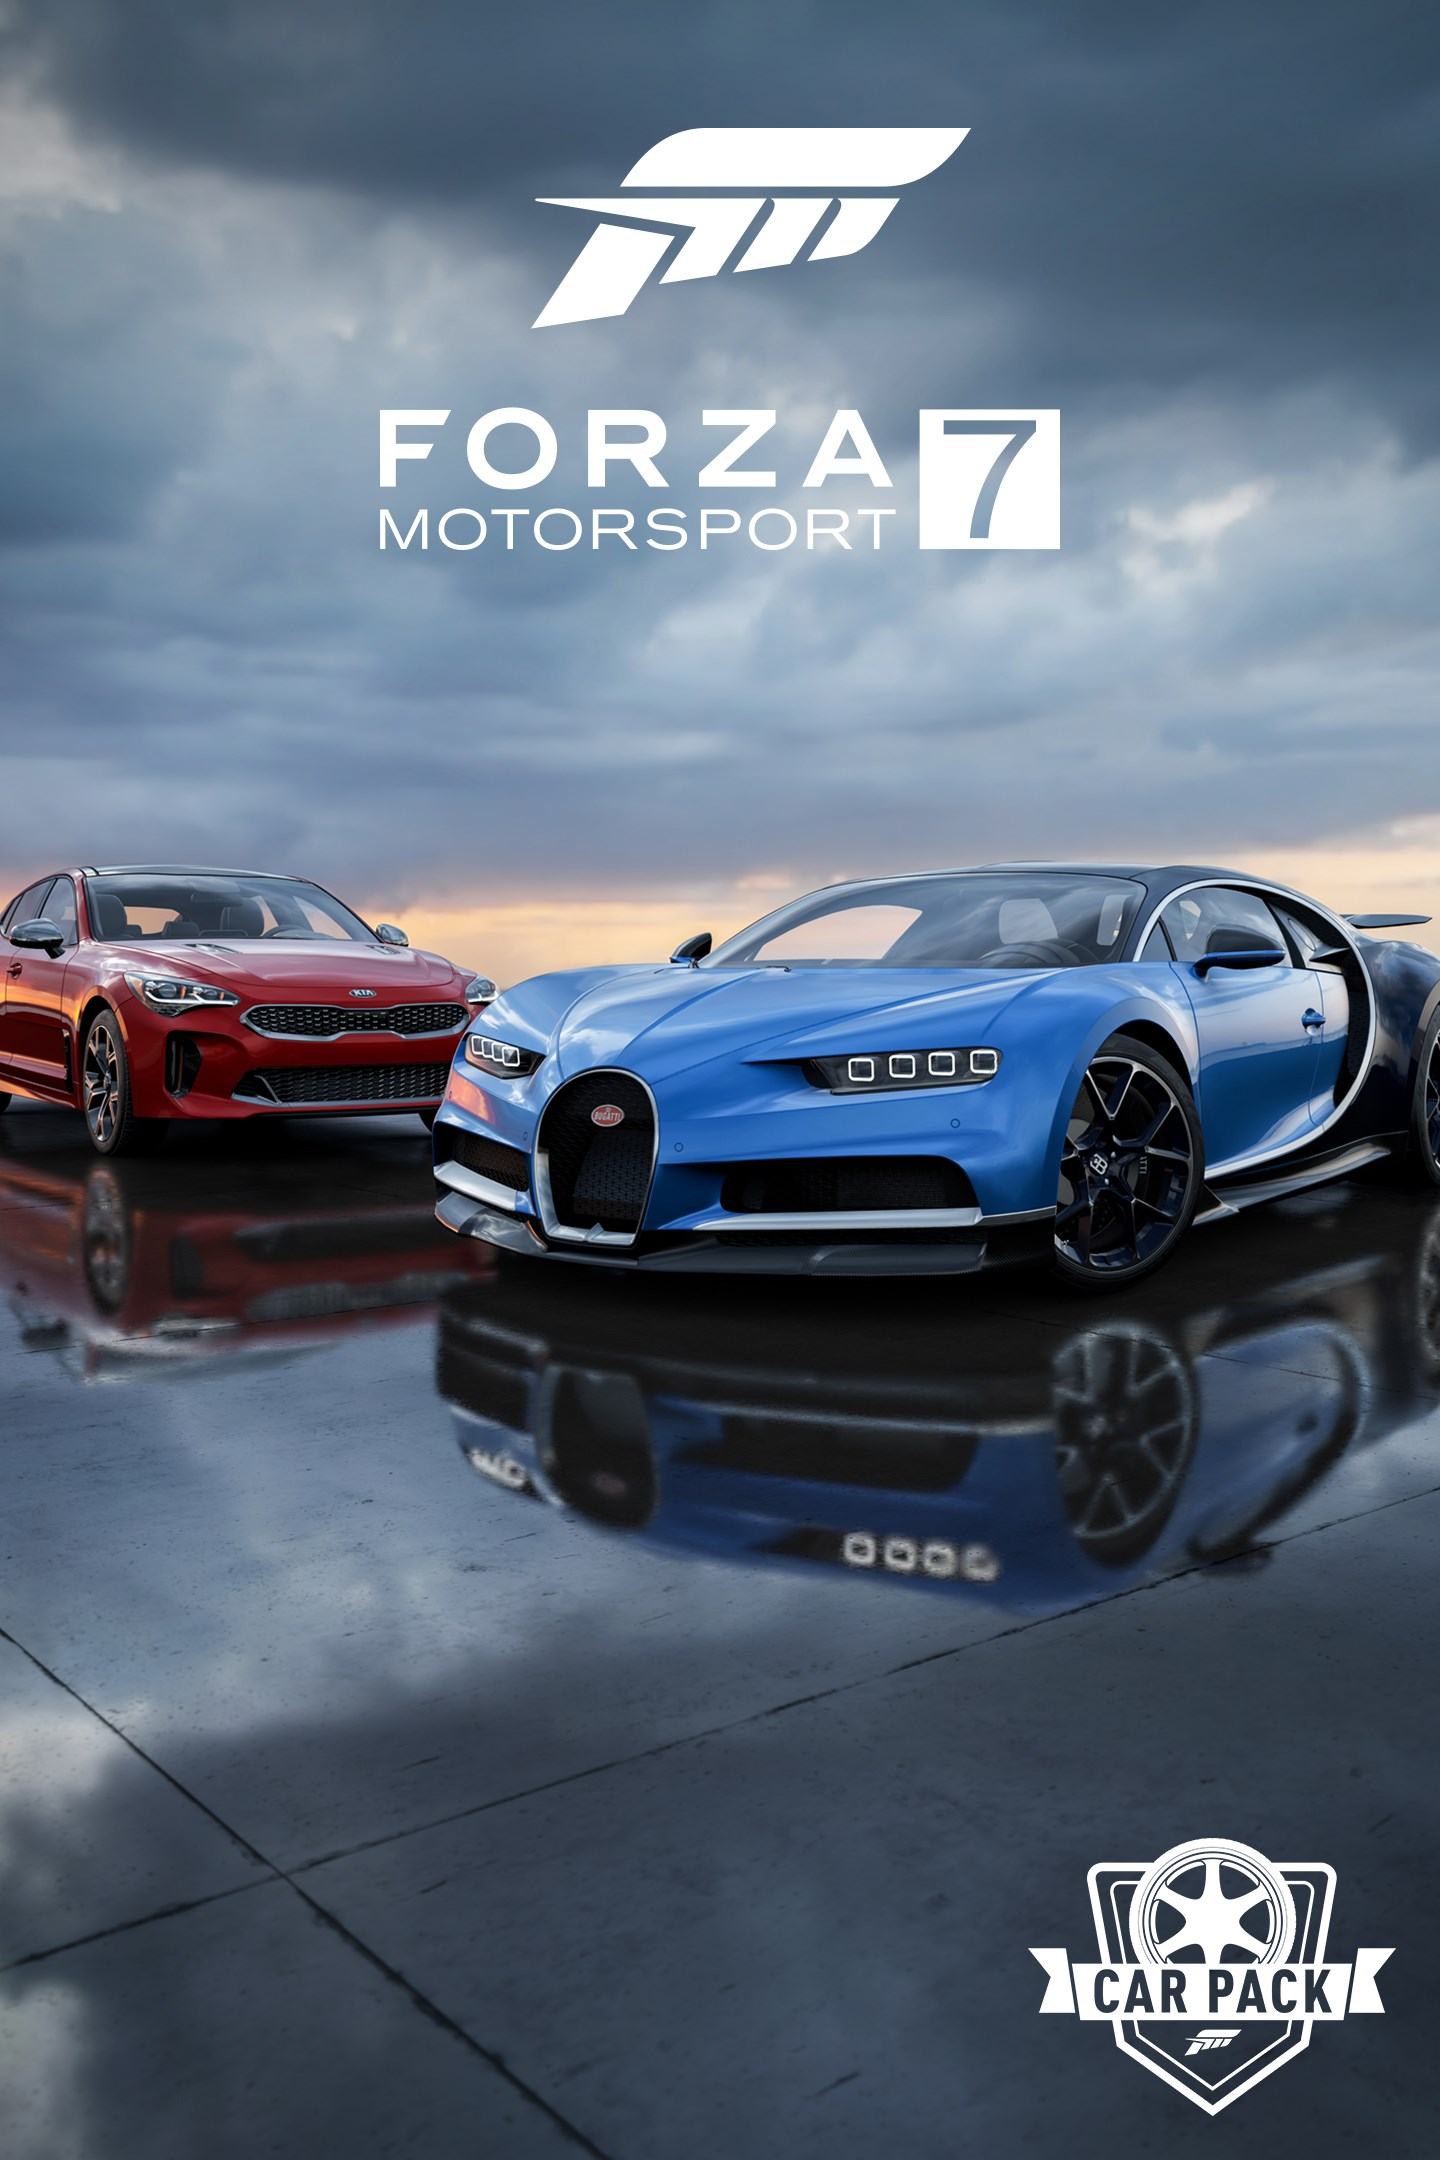 forza motorsport 7 car pass on xbox one. Black Bedroom Furniture Sets. Home Design Ideas